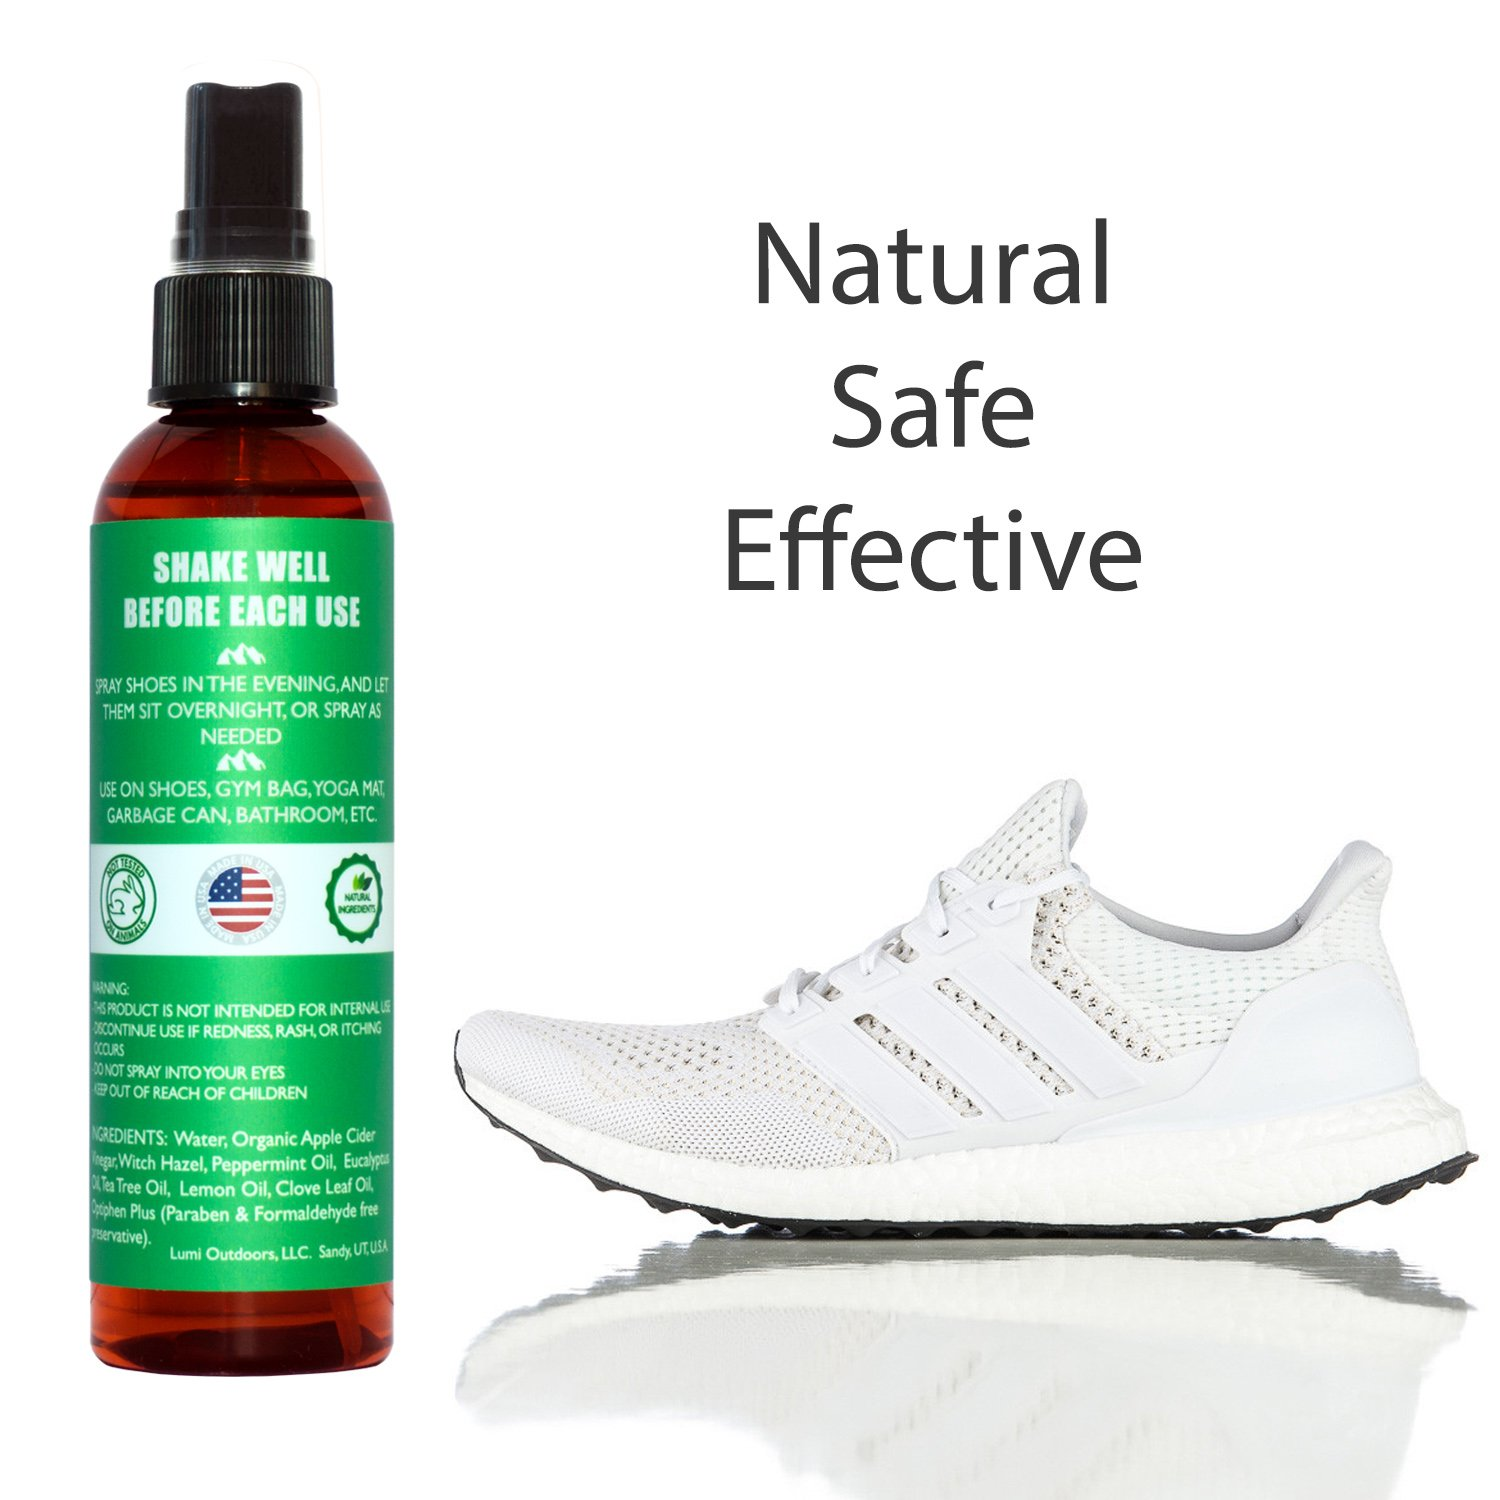 Stink Free Shoe Spray Review Stink Free Shoe Spray Review new foto